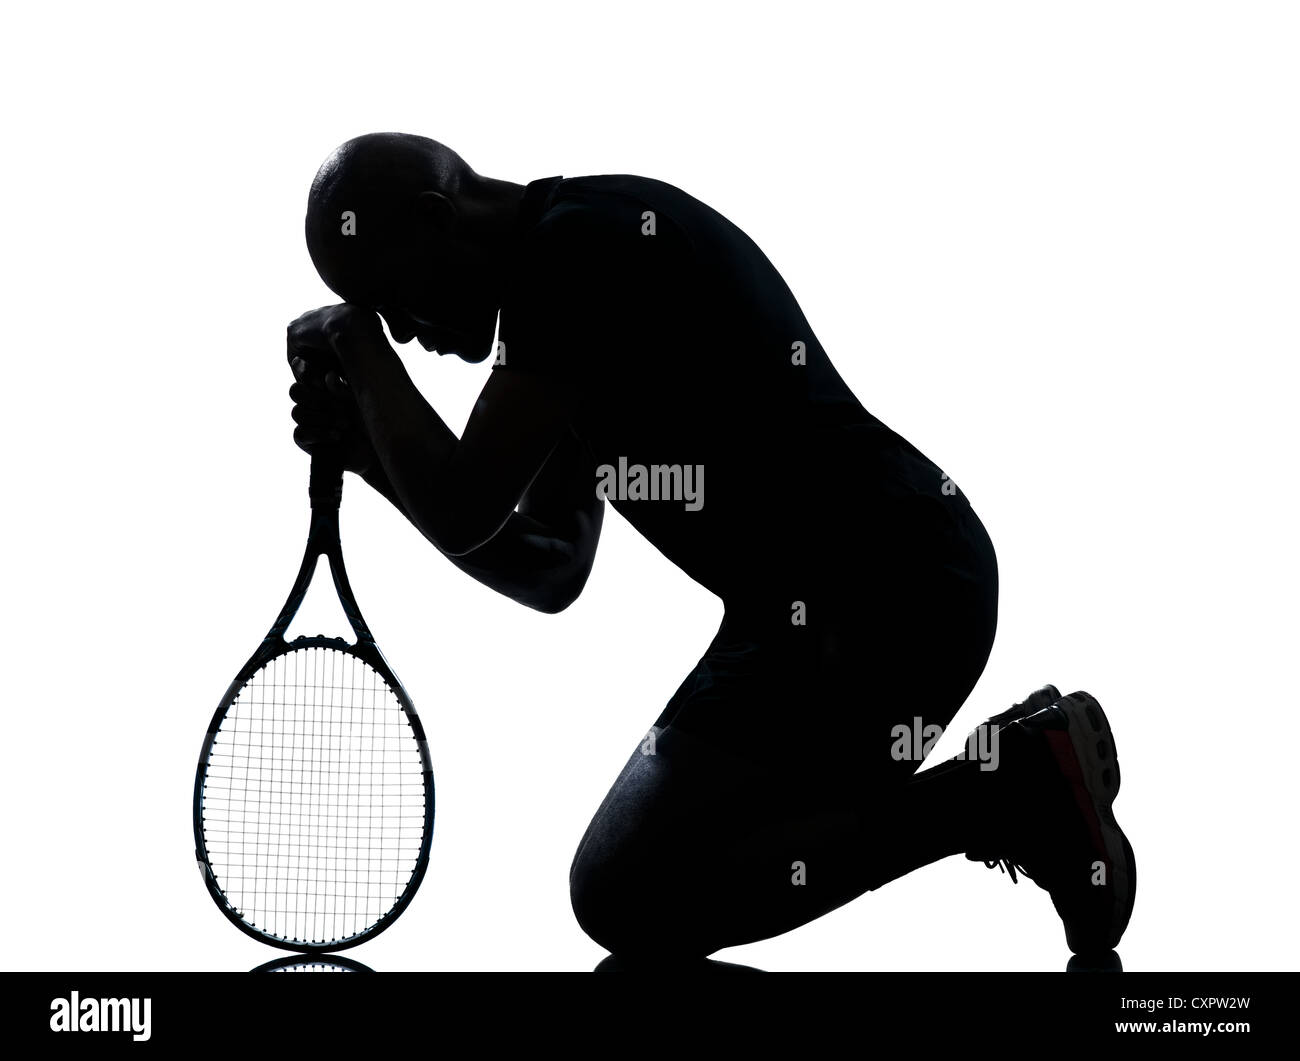 man african afro american playing tennis player on studio isolated on white background - Stock Image